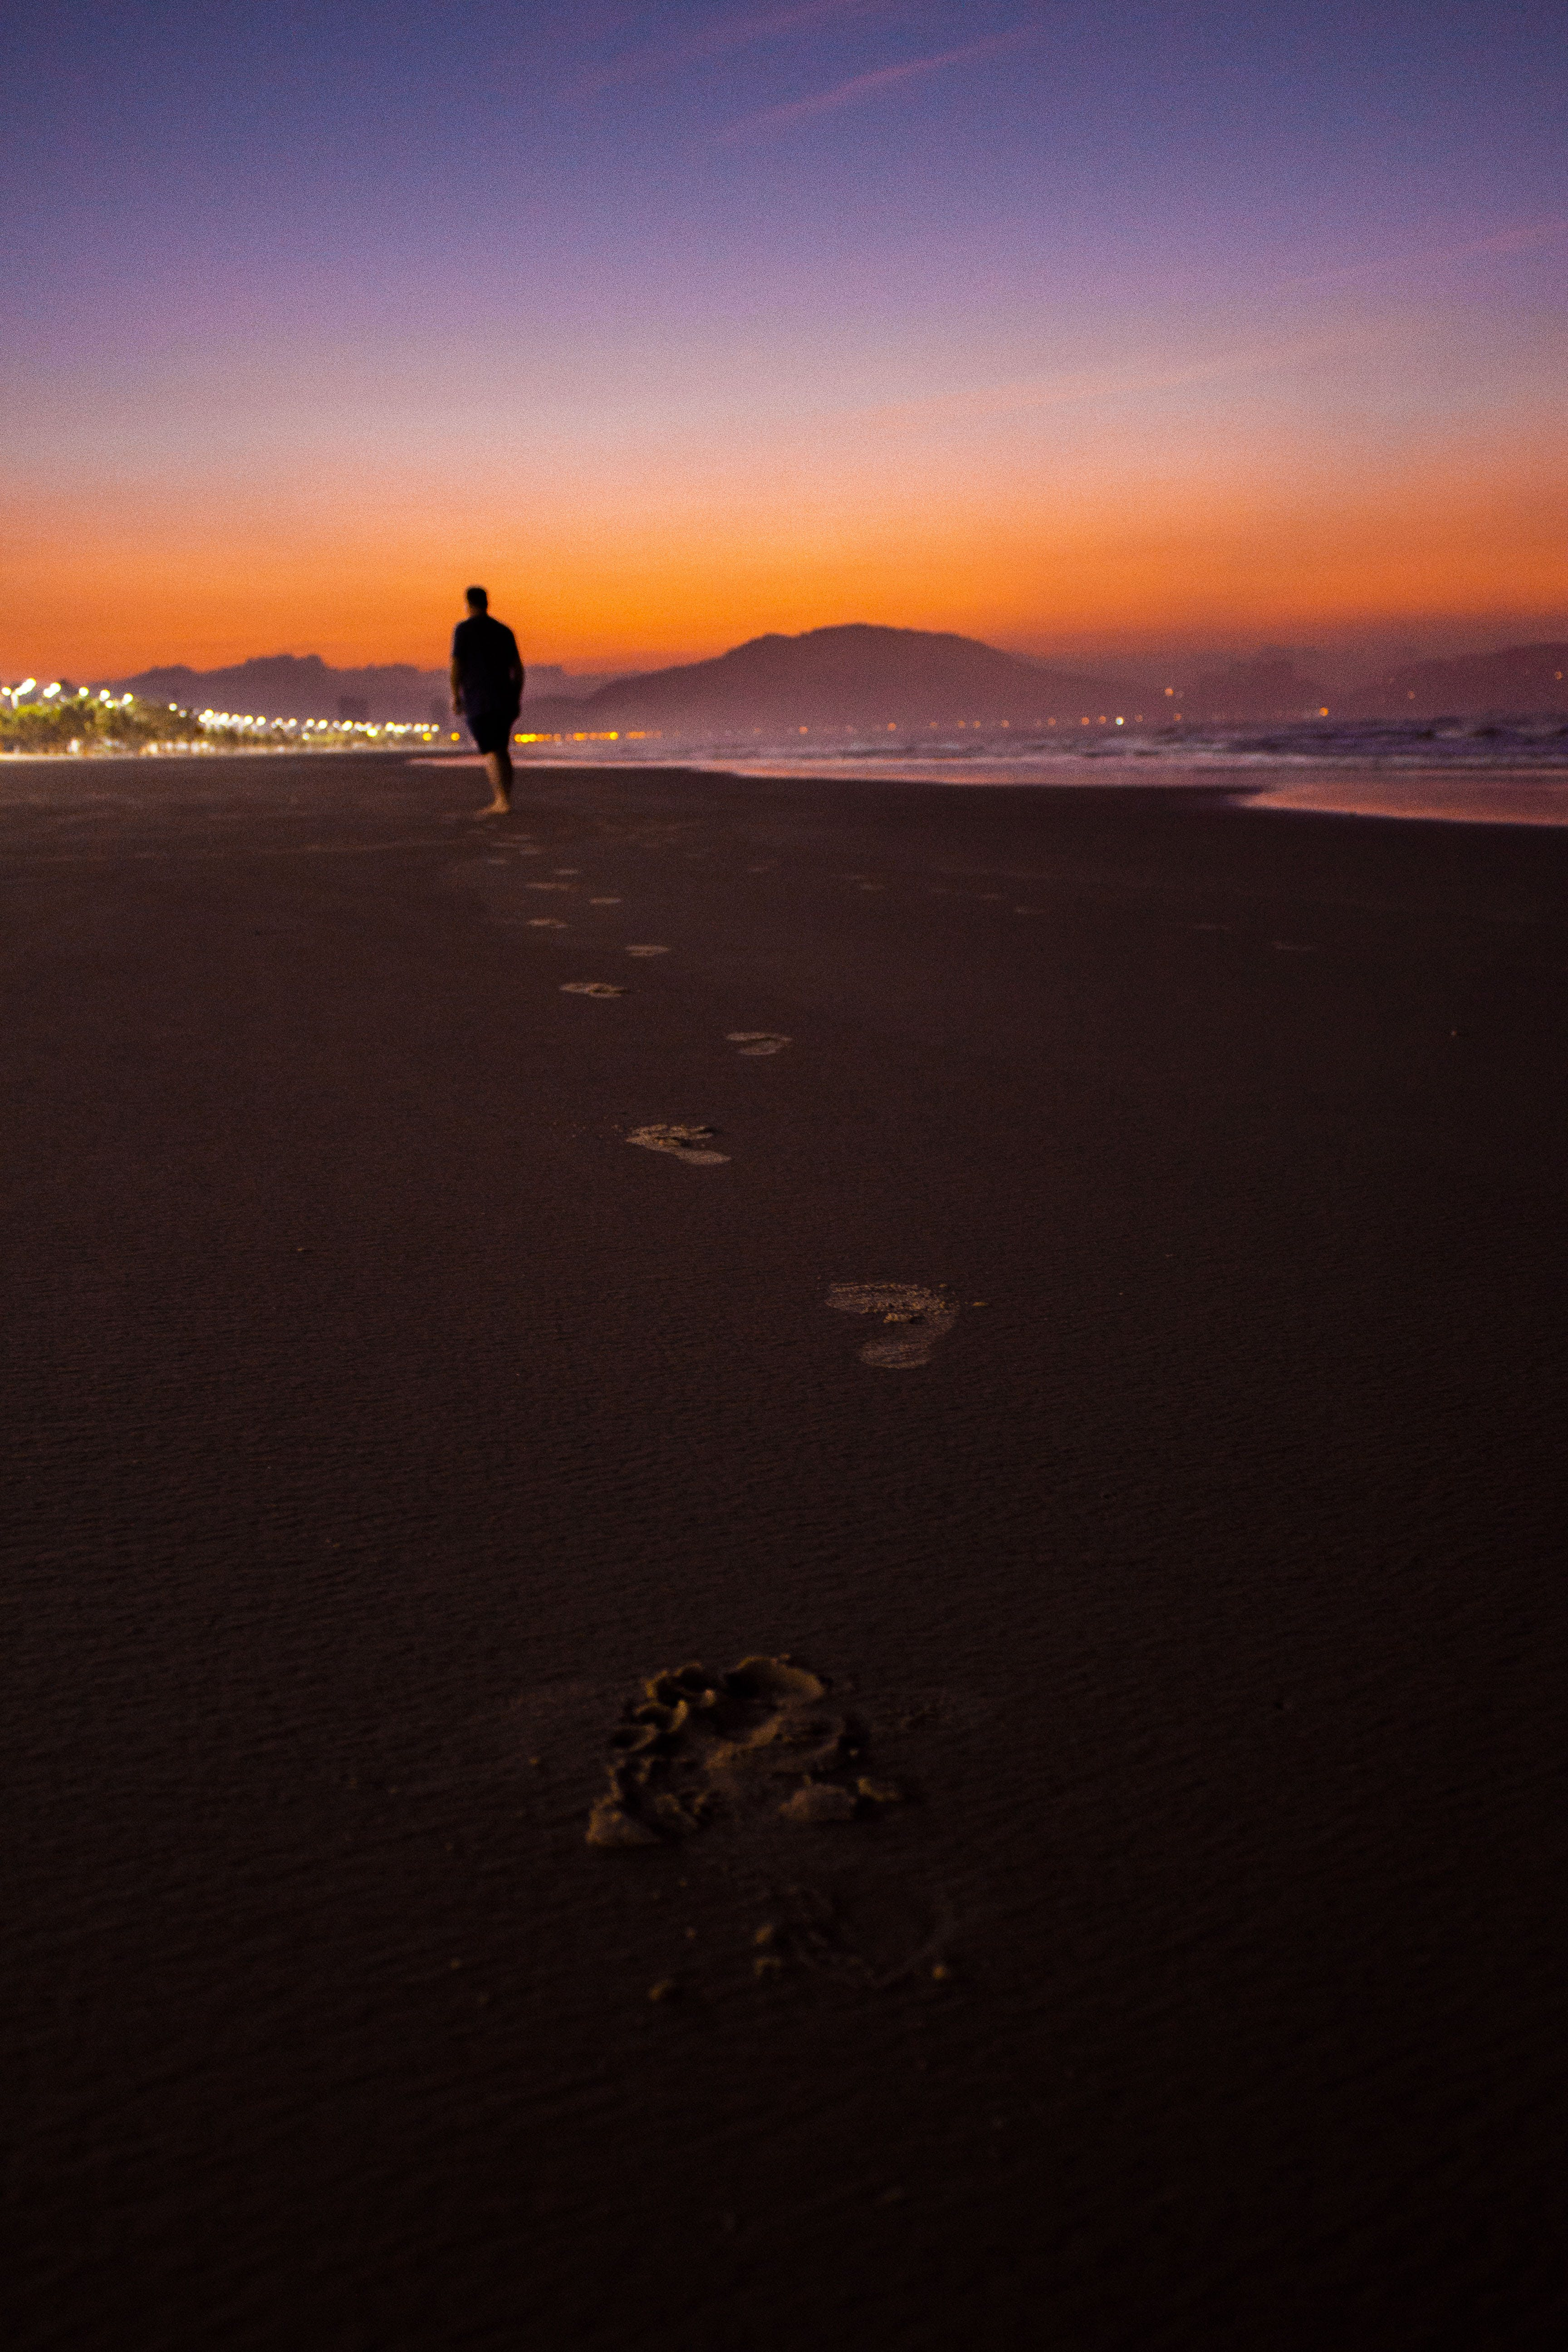 Silhouette Photography of Person Walking Beside Beach